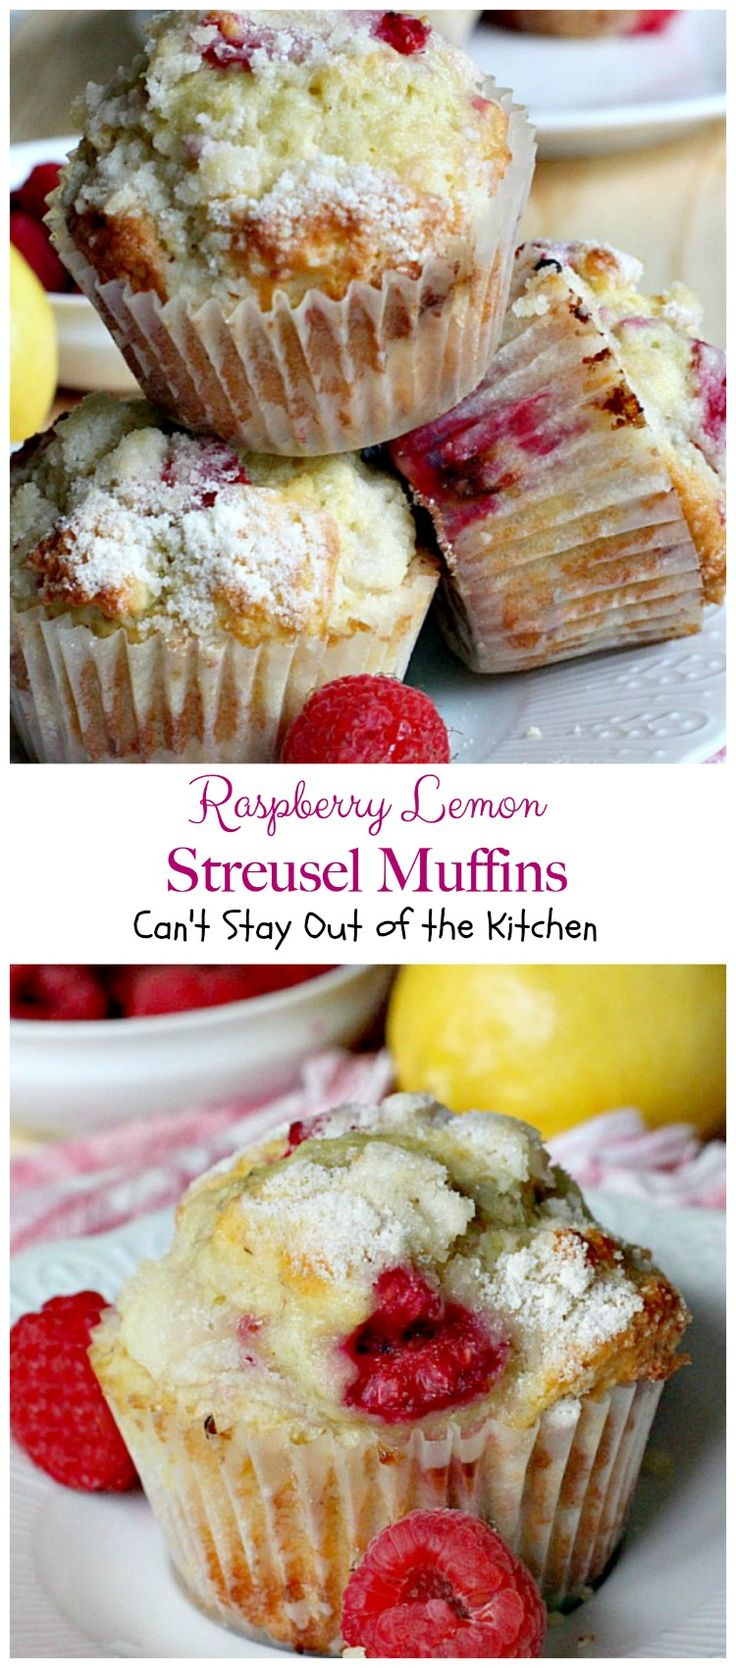 Festive muffins are great for a holiday breakfast. Raspberries, lemon peel and lemon yogurt along with a streusel topping make for one scrumptious muffin.